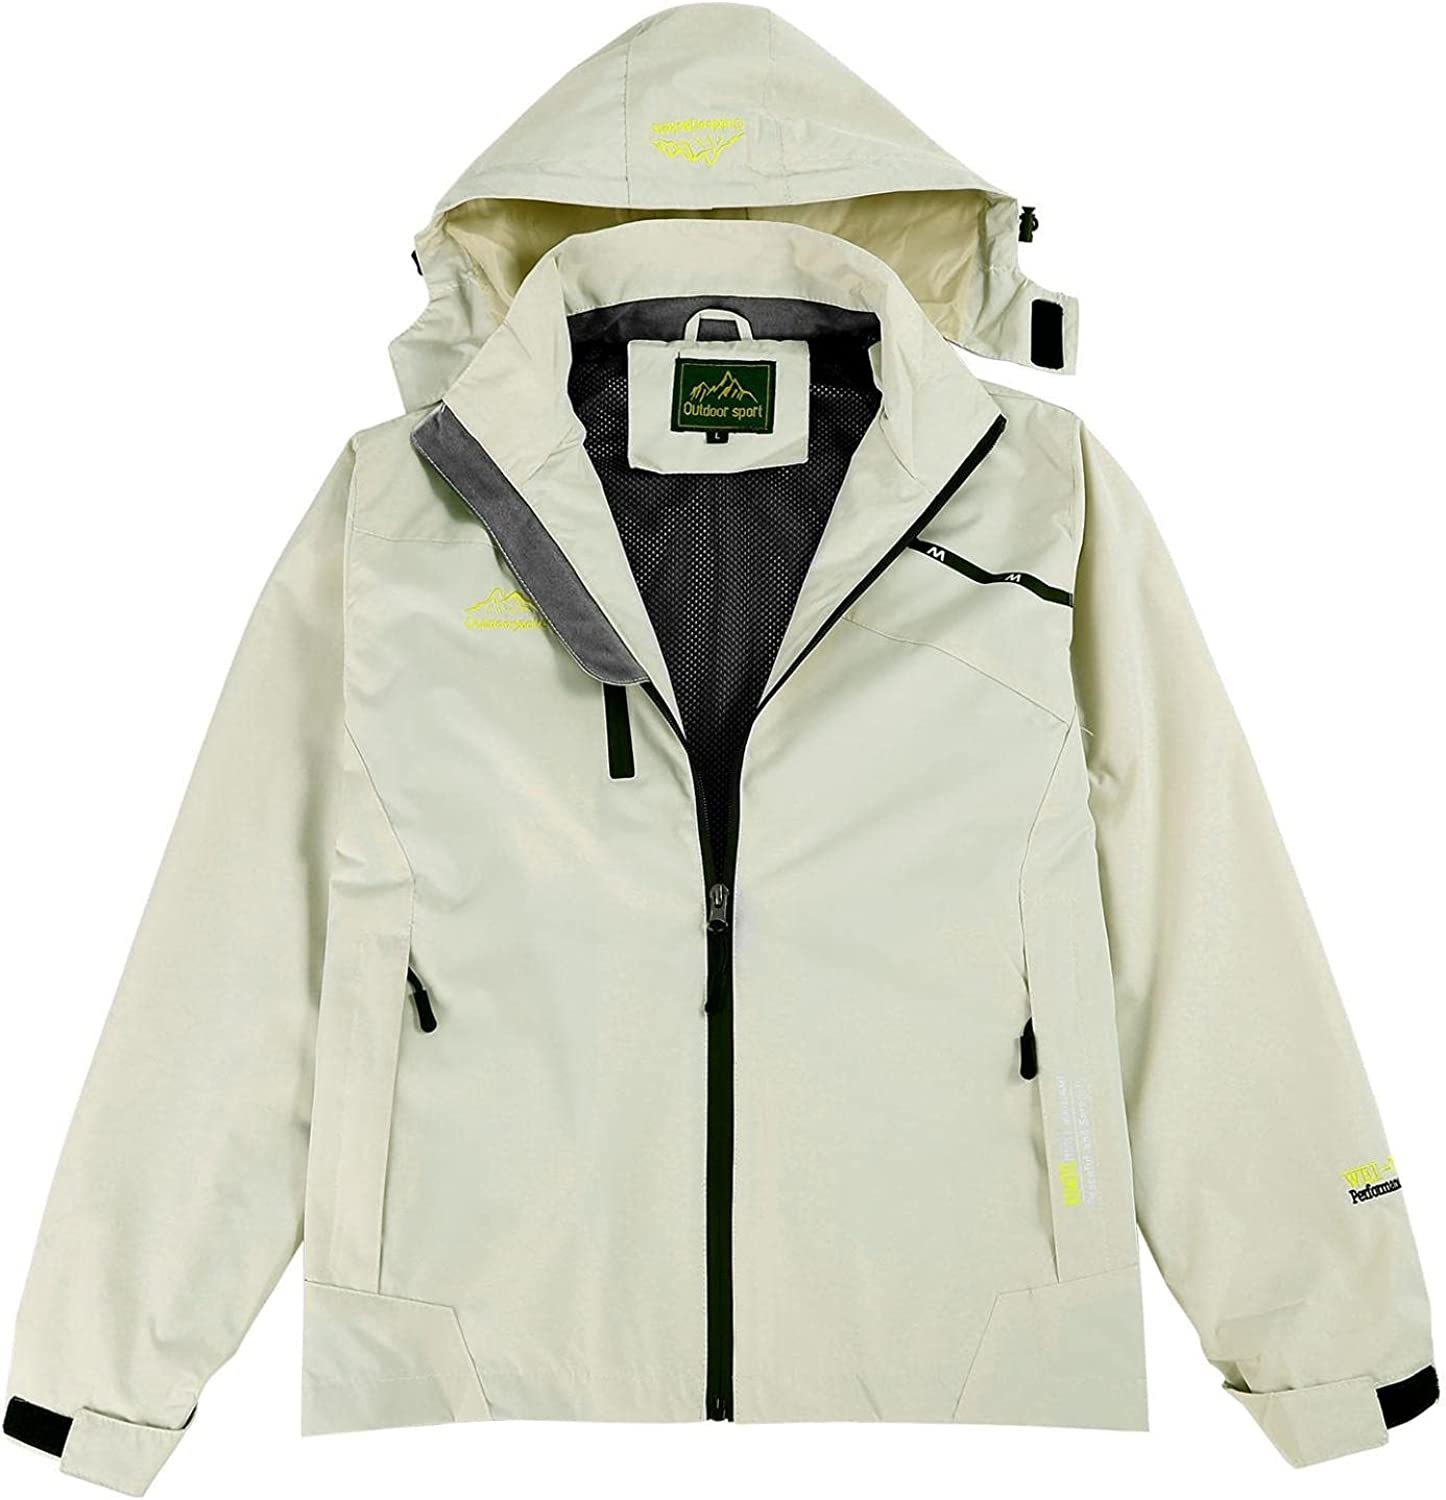 SUIQU Fall Coat for Women Zip-Up Ranking TOP4 Jacket Lightweigh Hoodie Houston Mall Casual